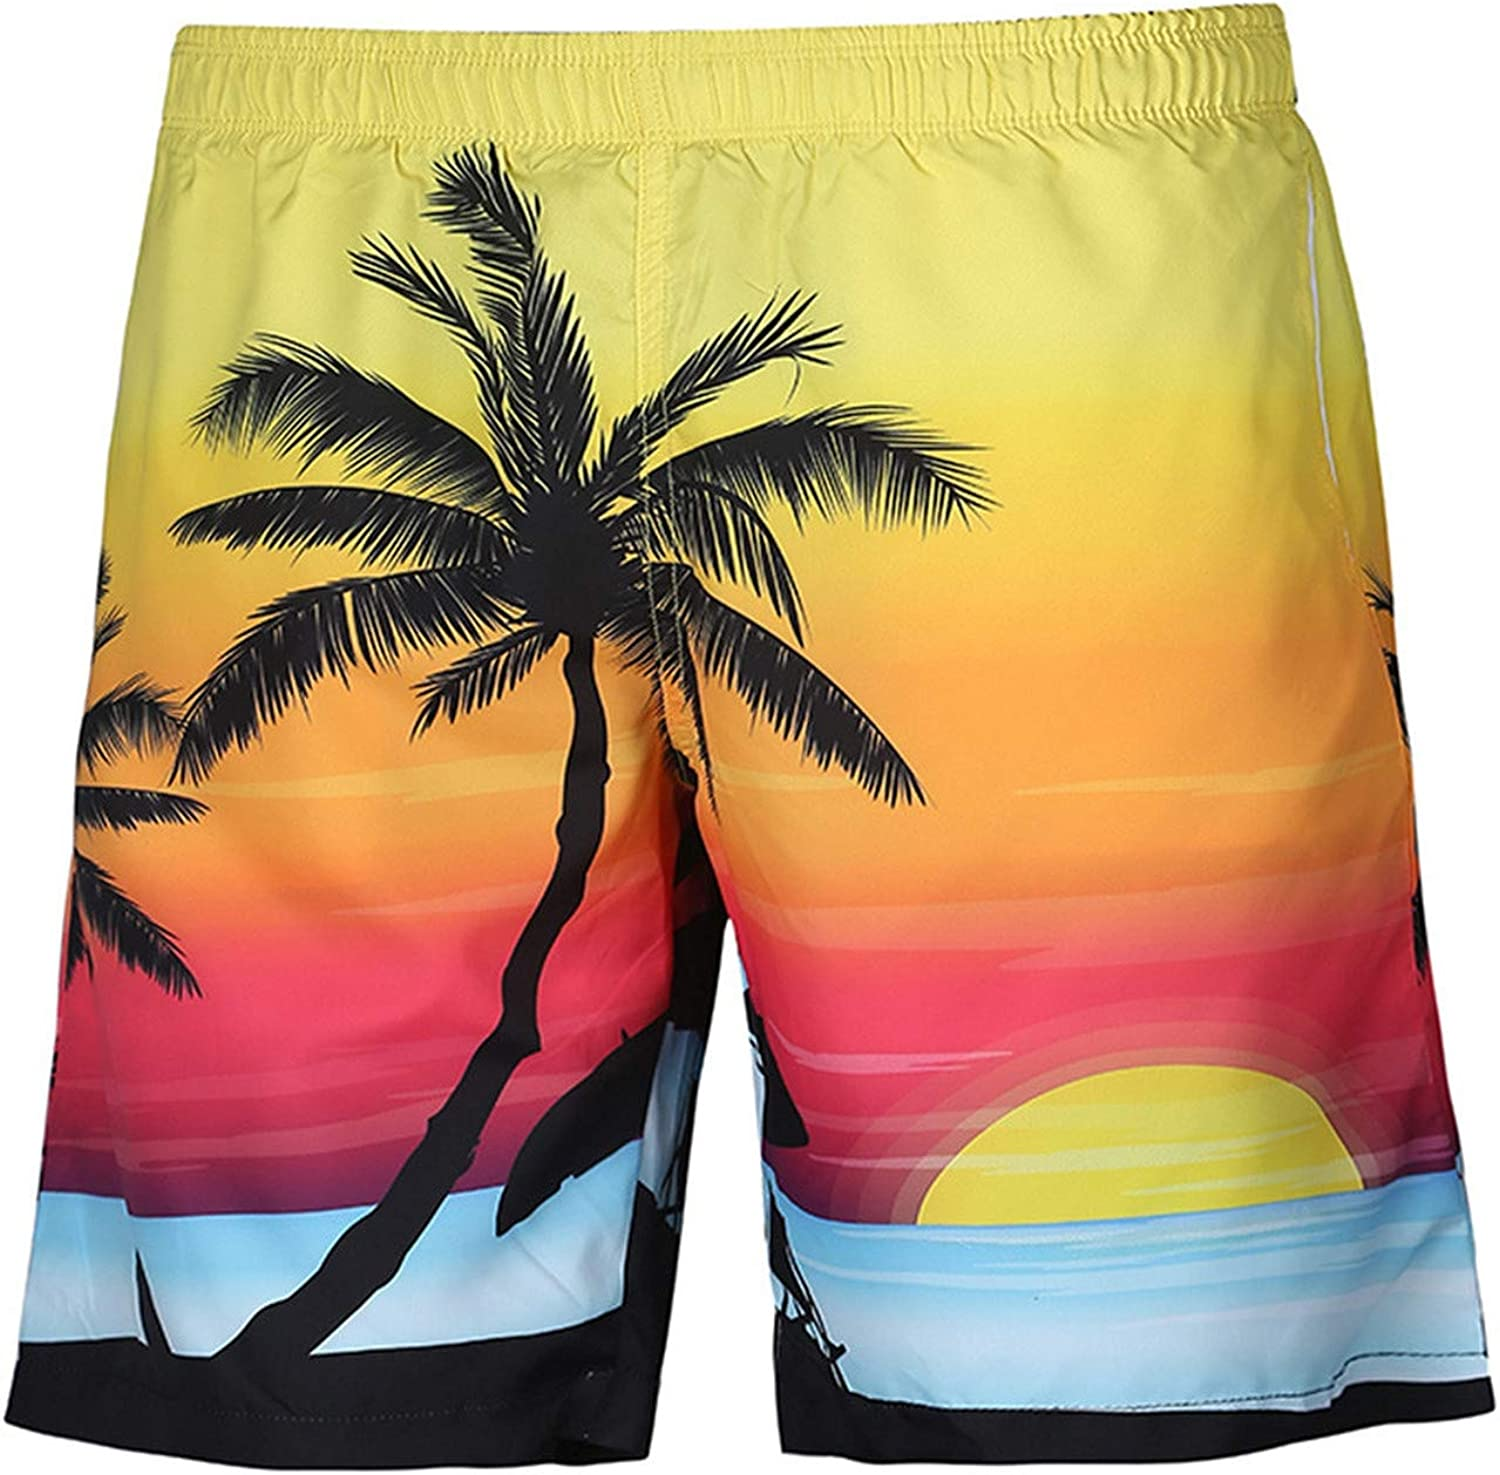 EspTmall Mens Summer Casual Plus Size Tropic Hawaii Palm 3D Printed Beach Shorts Pants 2019 Swimming Top for Men Swimsuit Multi XXL United States